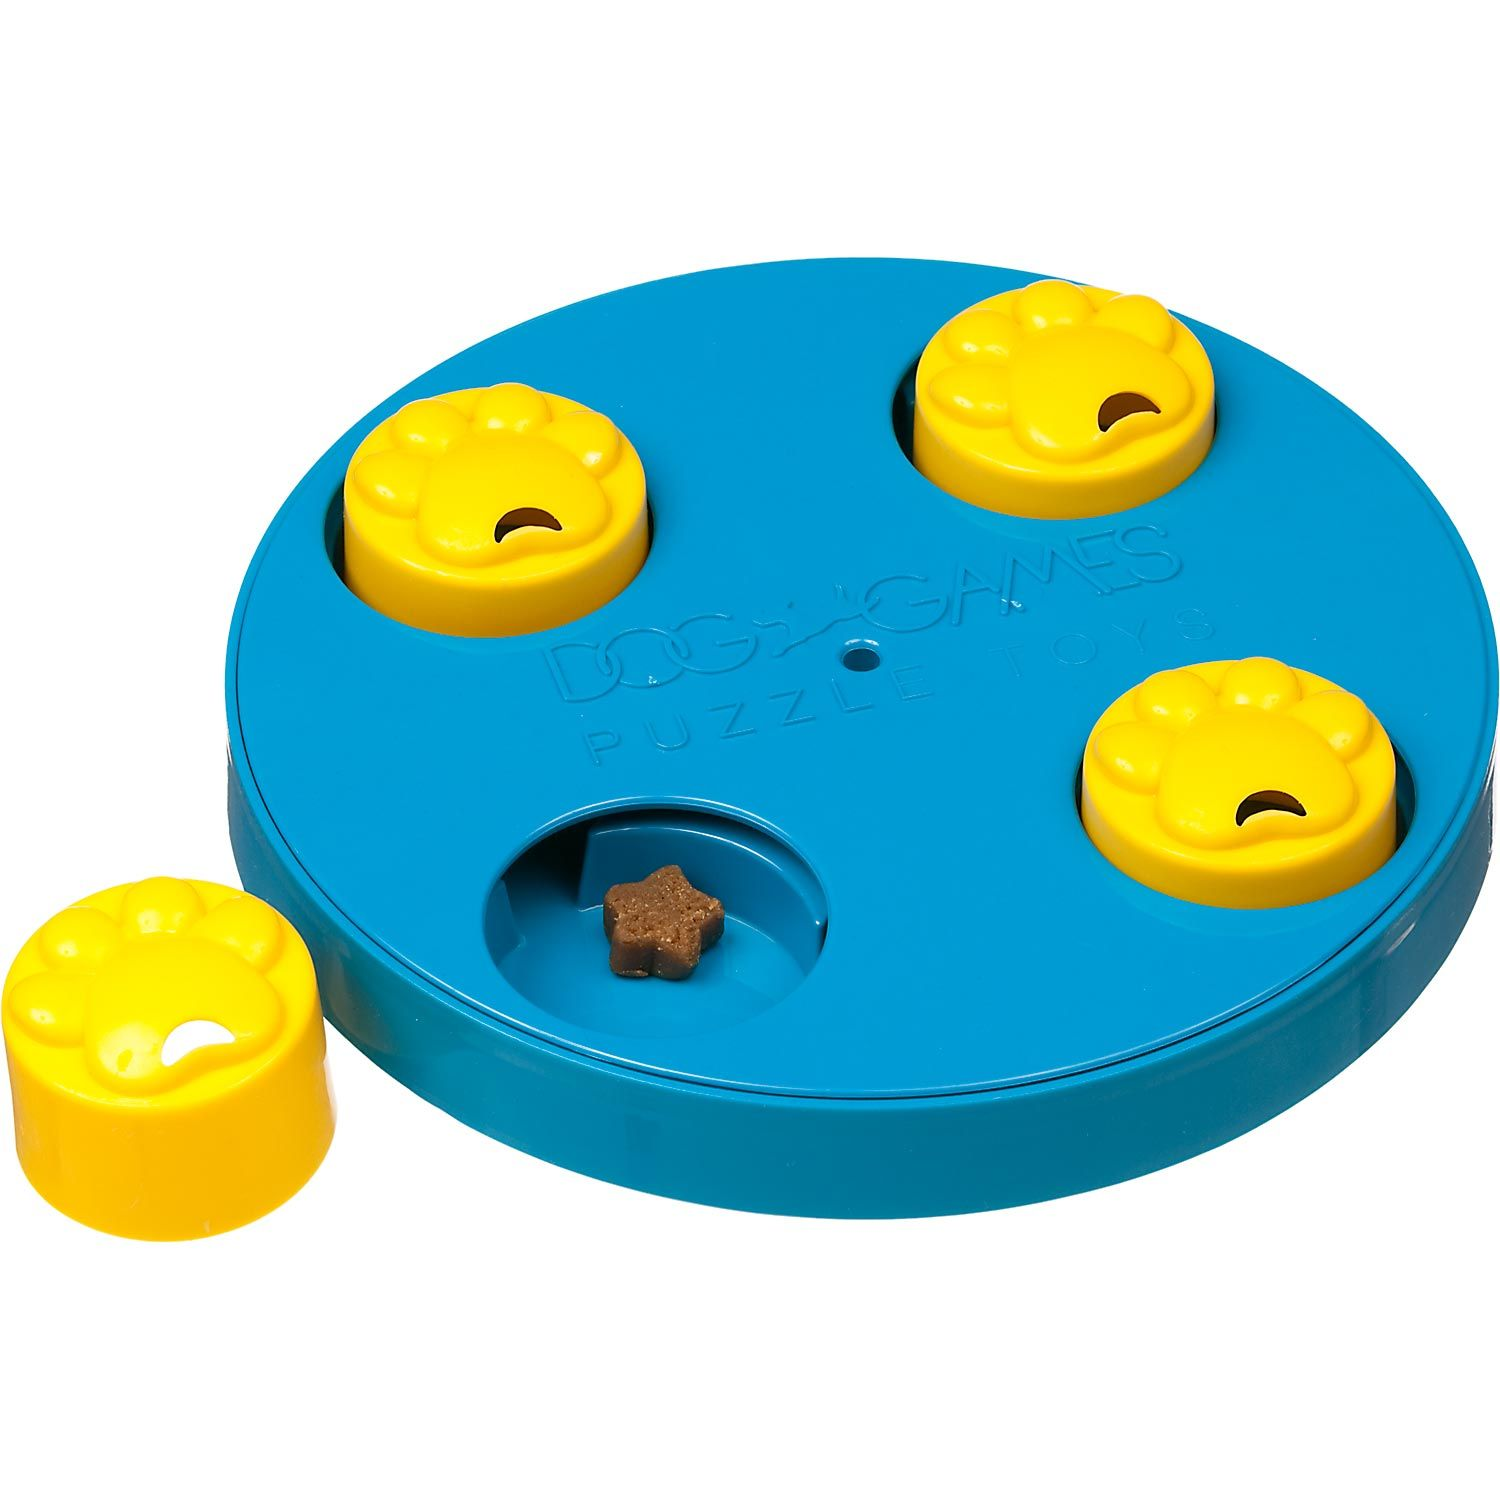 Kyjen Dog Games Treat Wheel Dog Toy Puzzle We Got This For